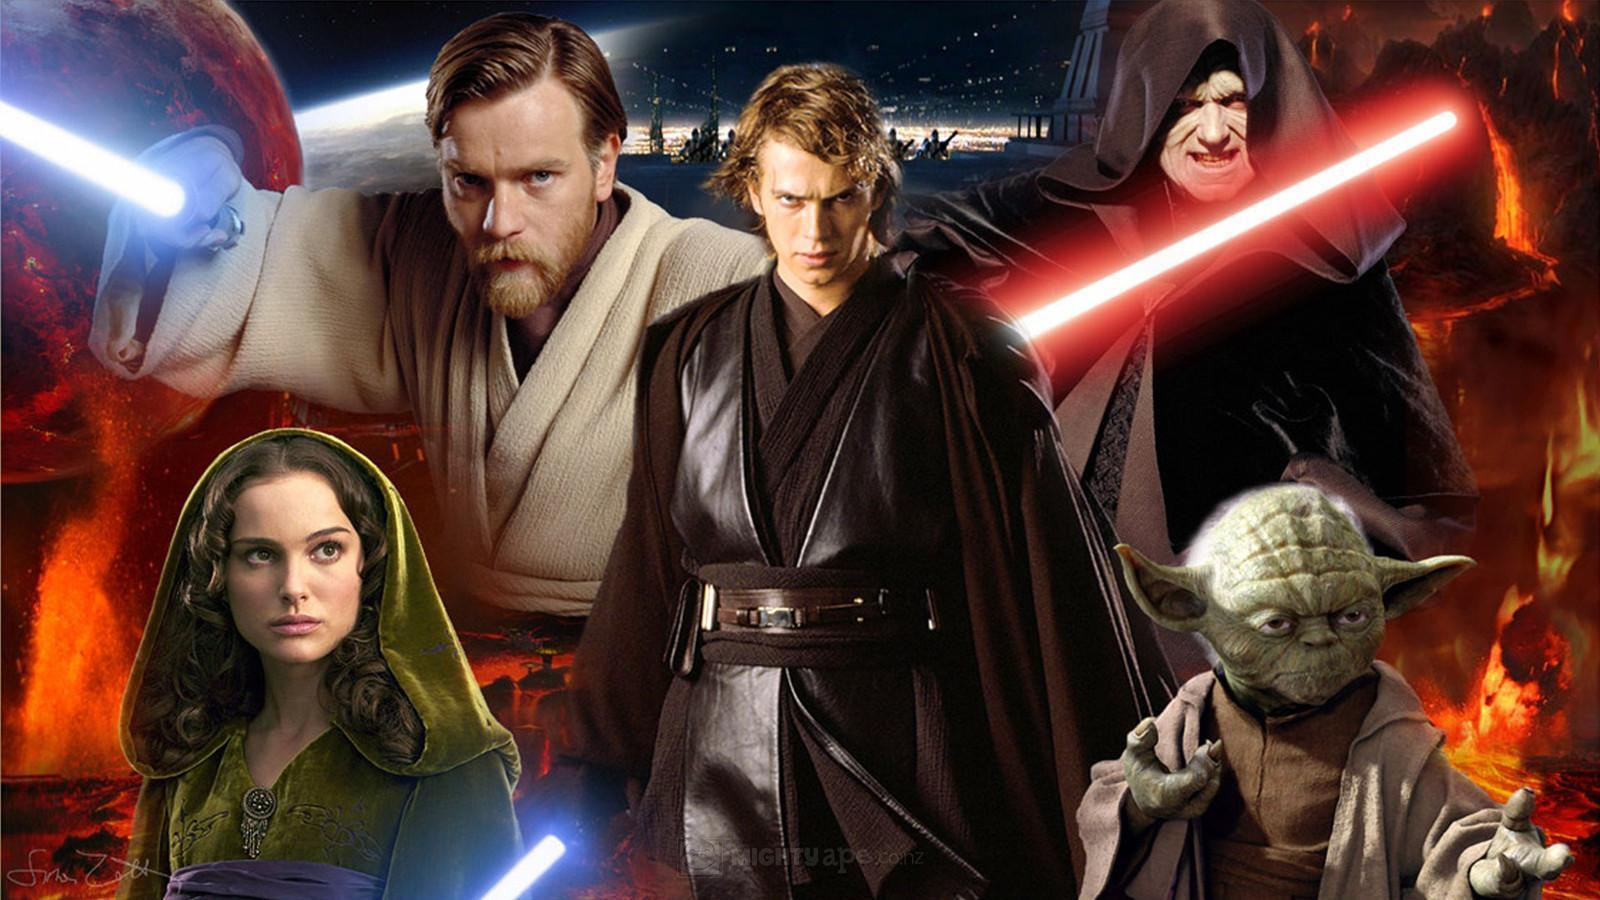 I'm think of rewriting the Star Wars prequels my own way: Should I?